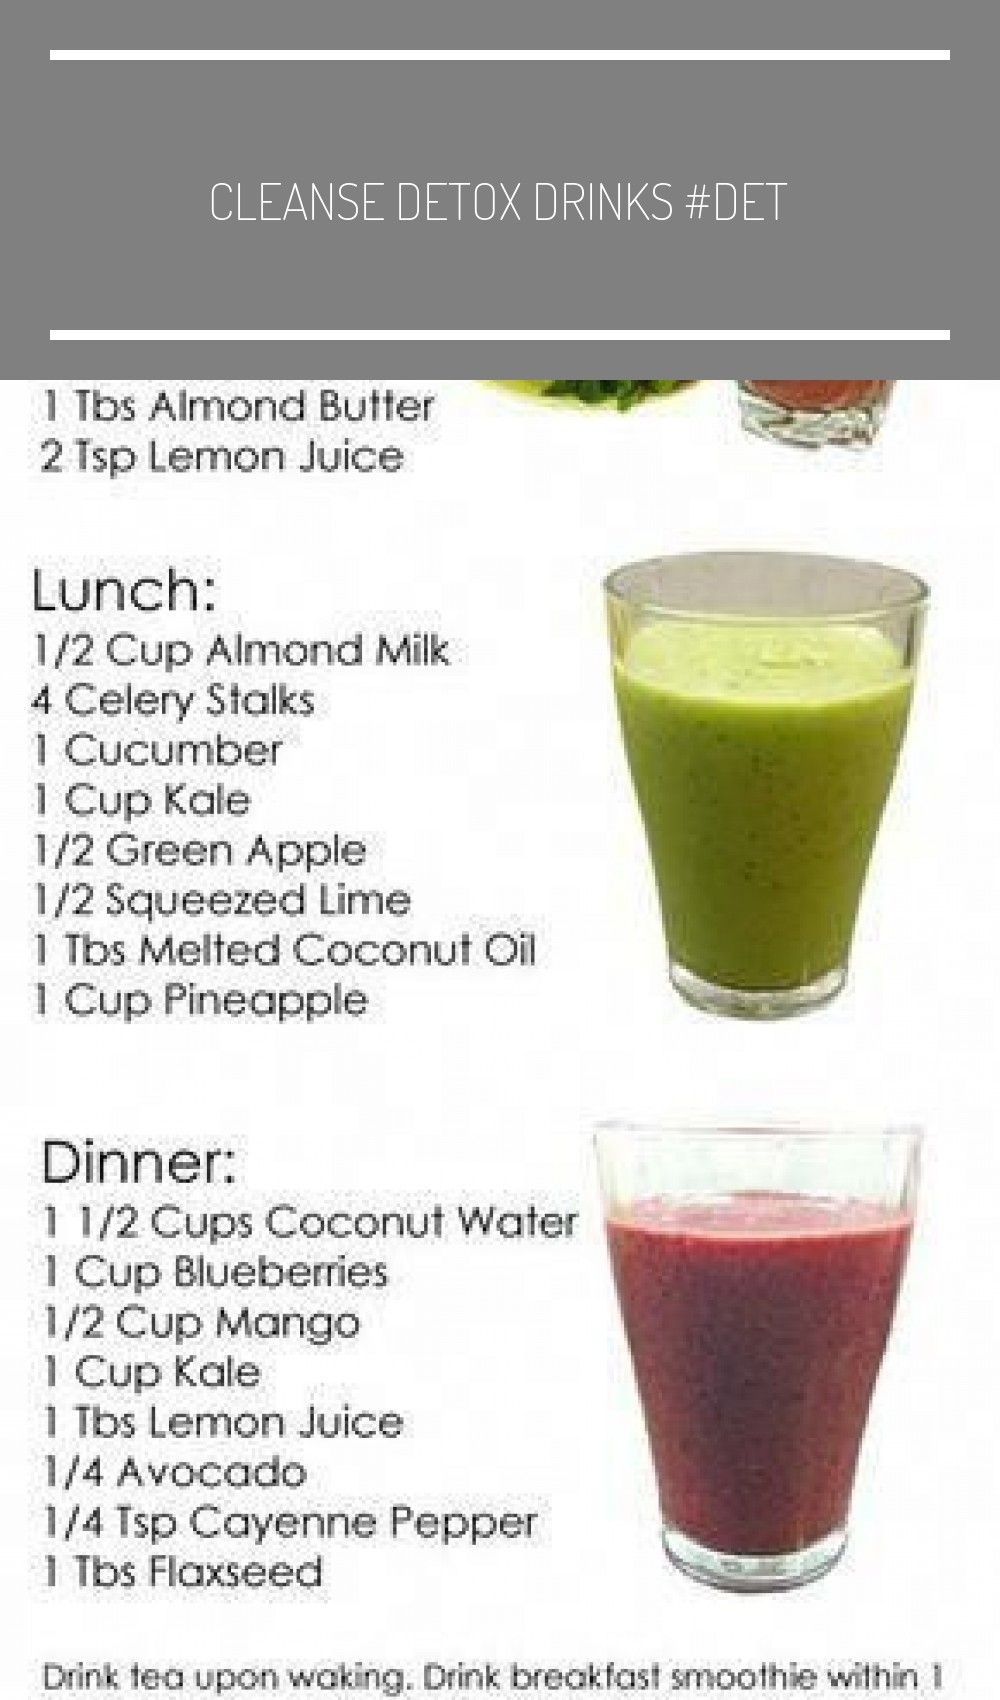 cleanse detox drinks #DetoxDrinks- cleanse detox drinks #DetoxDrinks Best Picture For  detox soup giada  For Your Taste You are looking for something,... -    cleanse detox drinks #DetoxDrinks- cleanse detox drinks #DetoxDrinks Best Picture For  detox soup giada  For Your Taste You are looking for something, and it is going to tell you exactly what you are looking for, and you didn't find that picture. Here you will find the most beautiful picture that will fascinate you when called  detox soup  #soupedetoxminceur